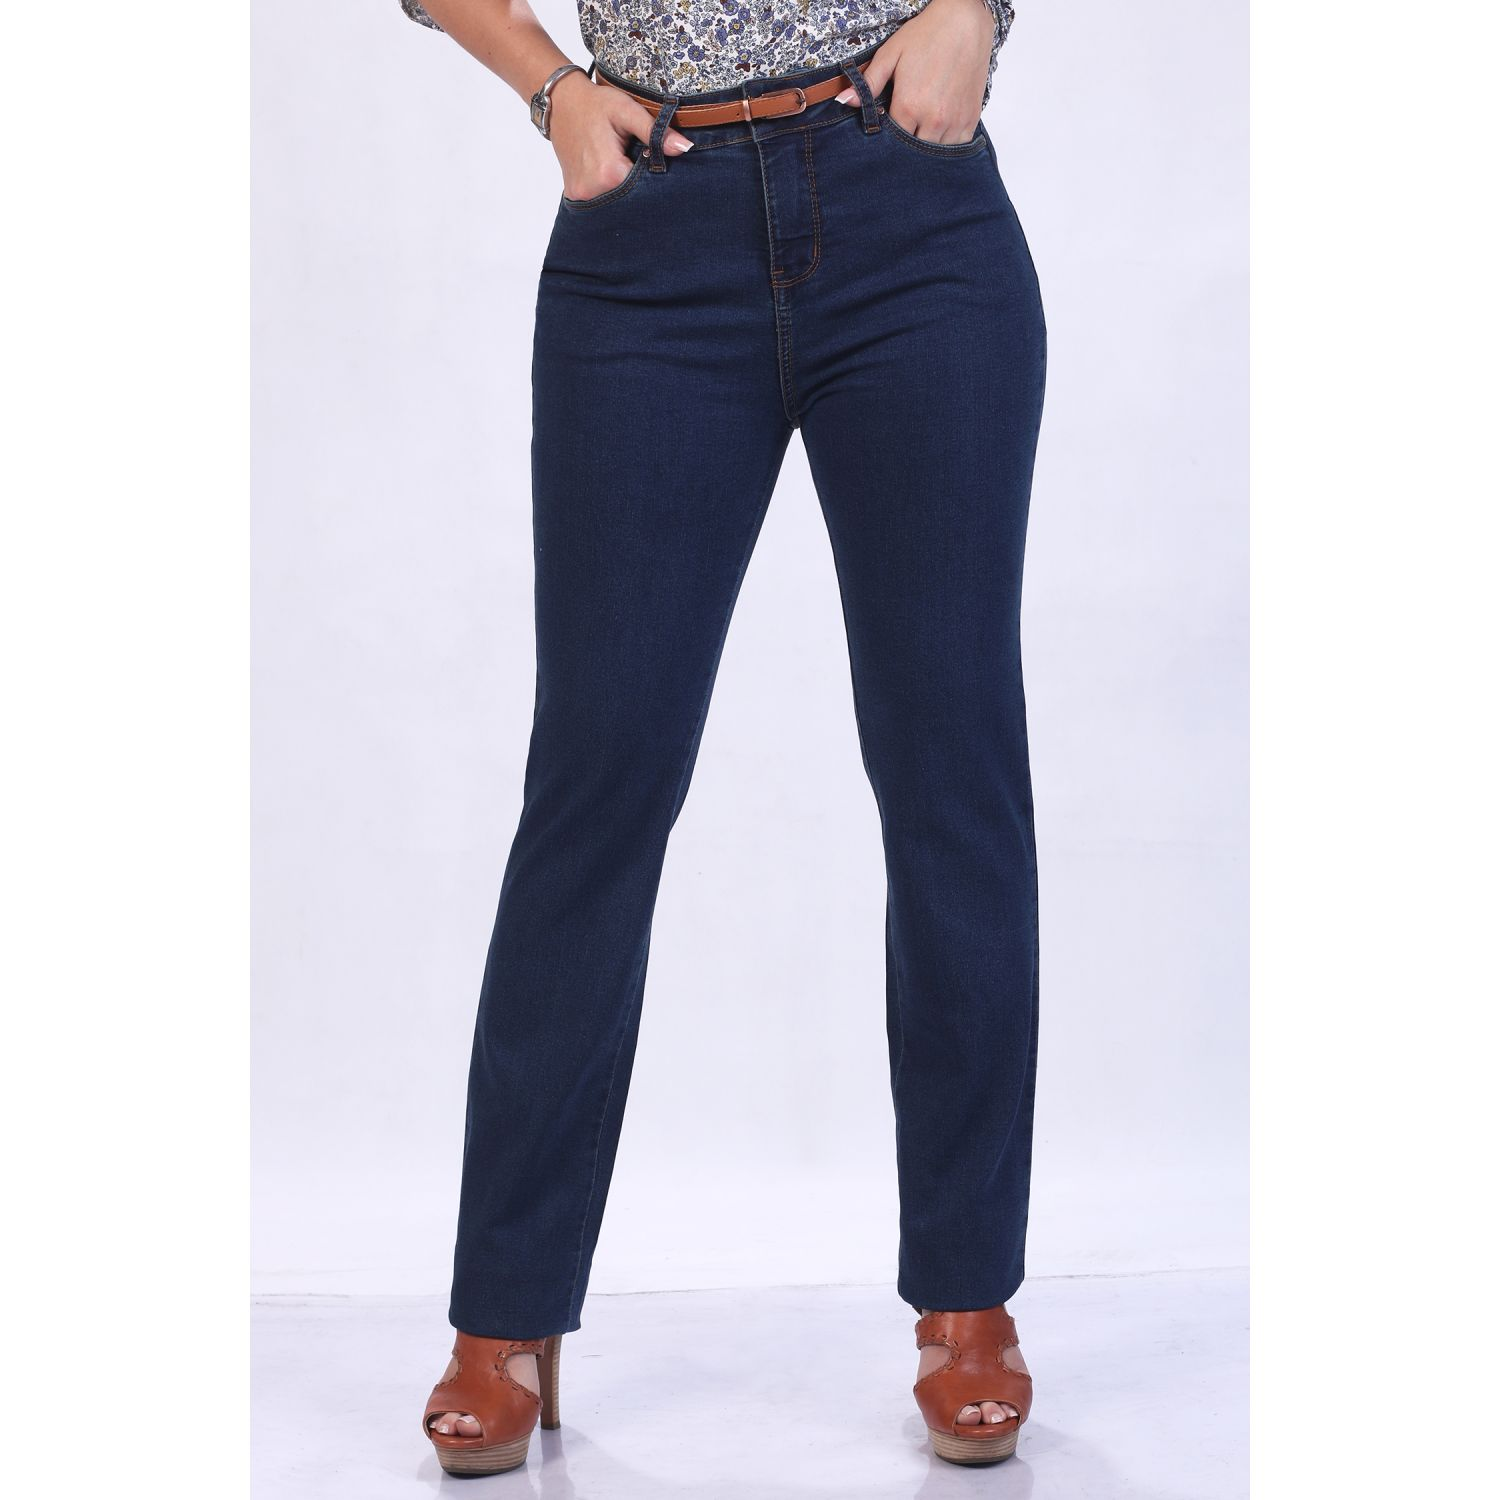 FORDAN JEANS Pantalon Cintura Clasico Laura Stretch LEAD DARK Casual